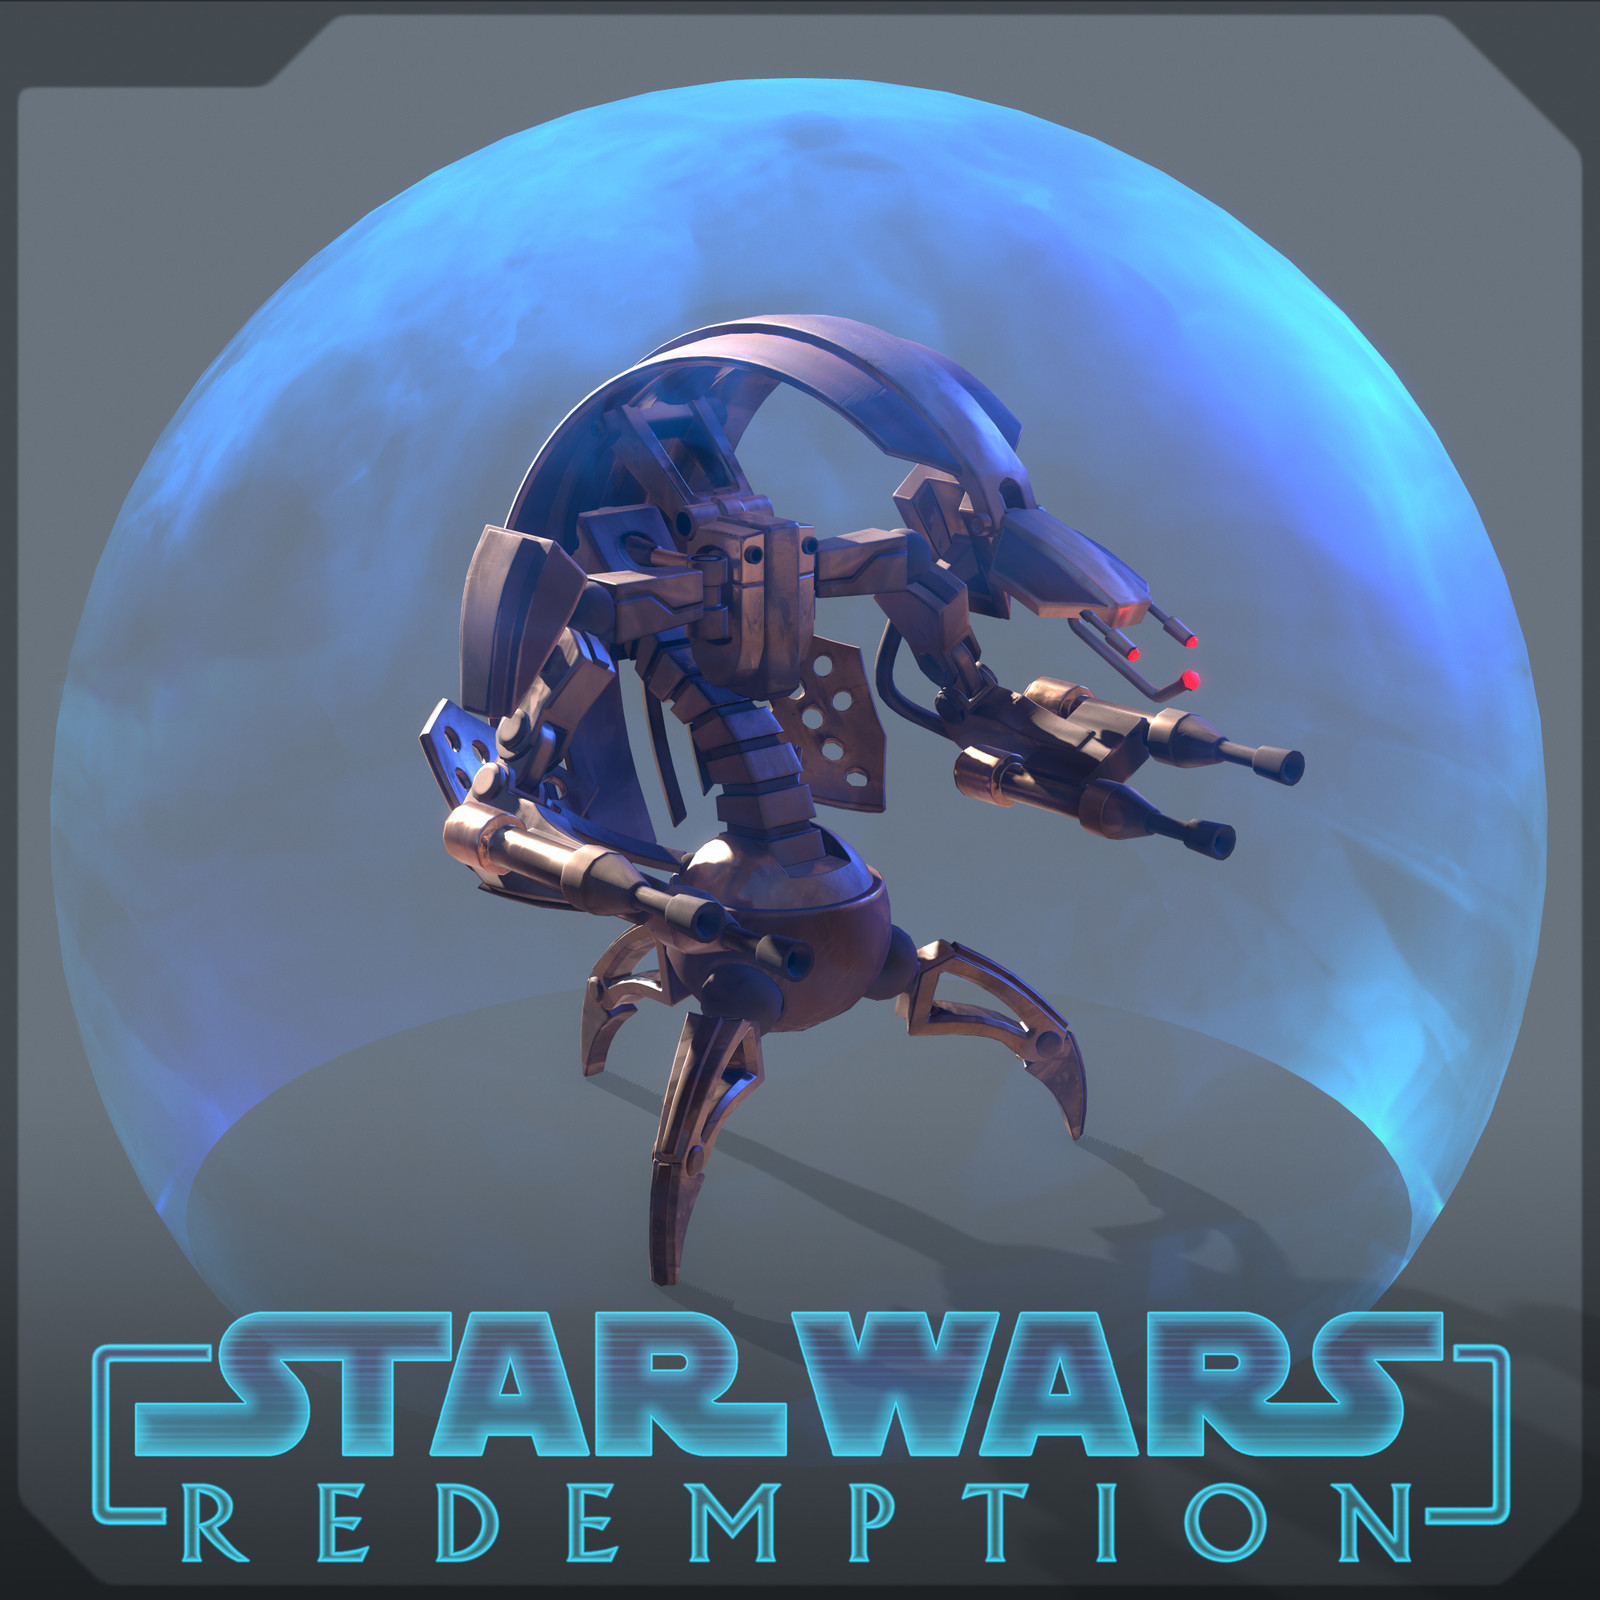 Star Wars - Redemption | CIS Droideka